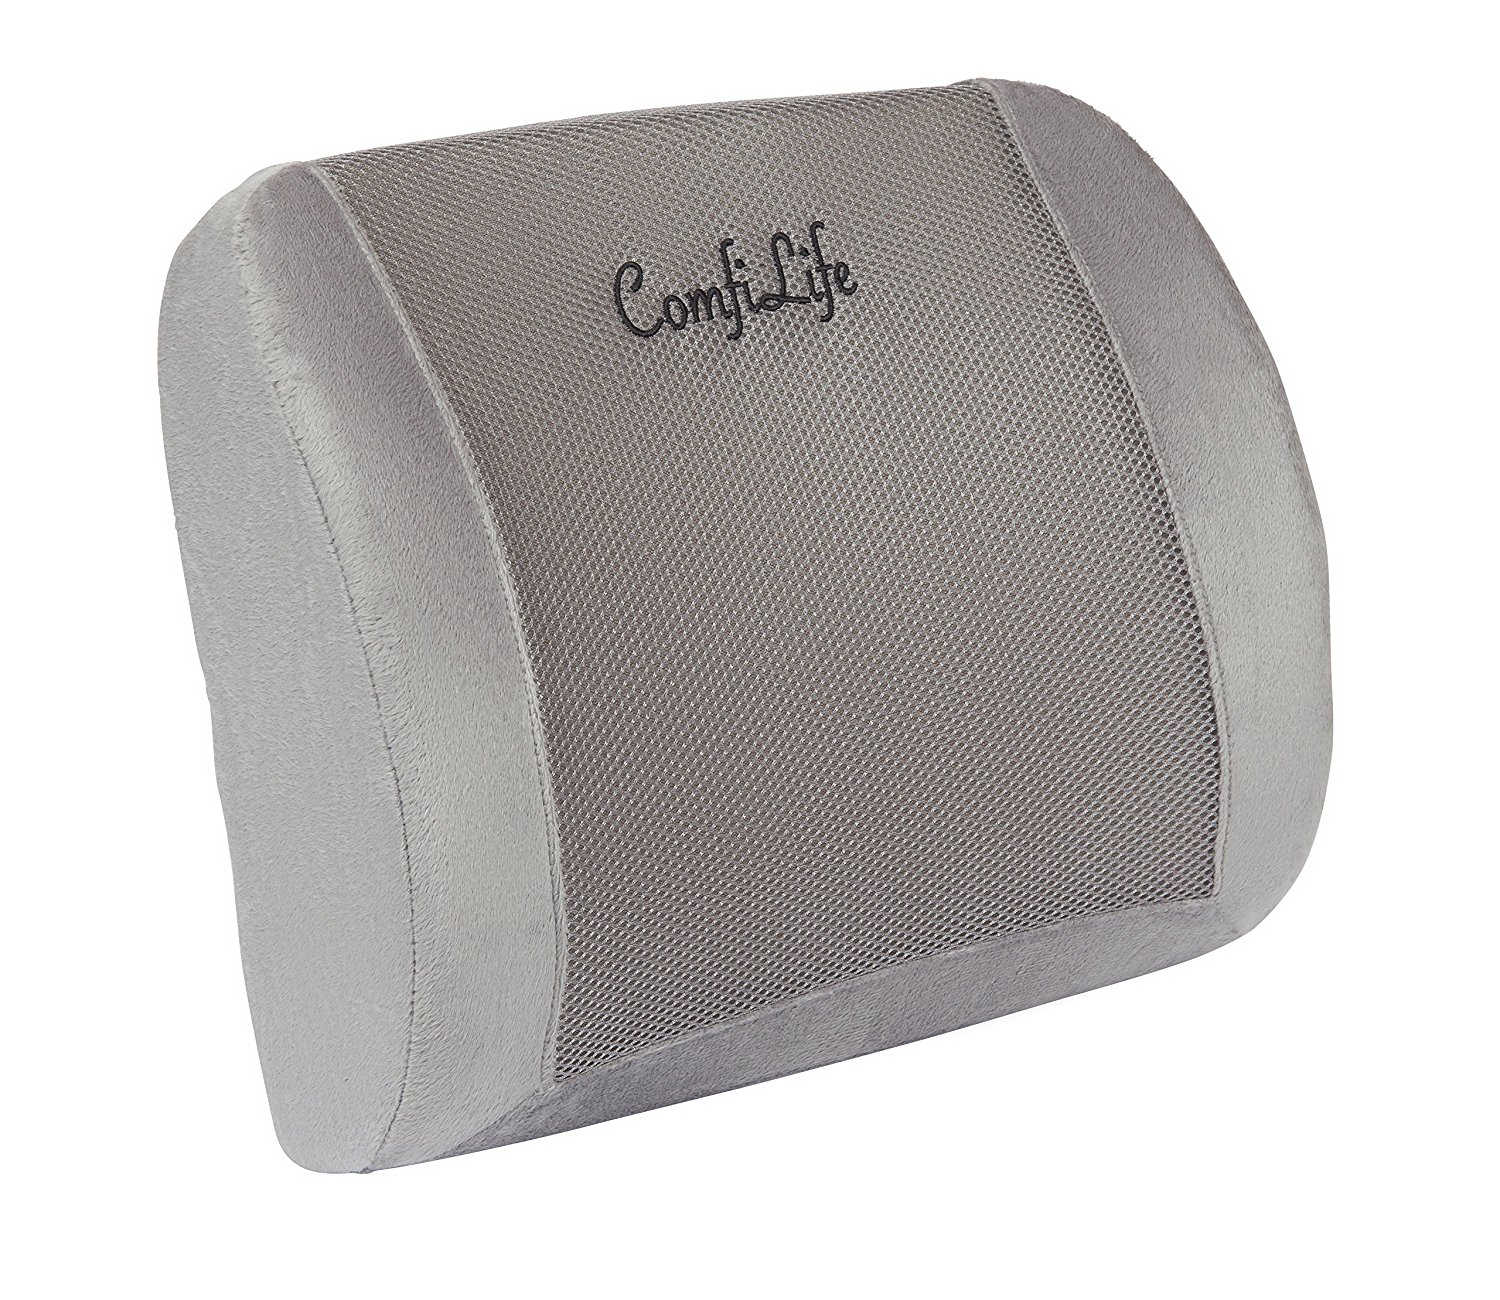 Lumbar support for car comfilife memory foam car lumbar support